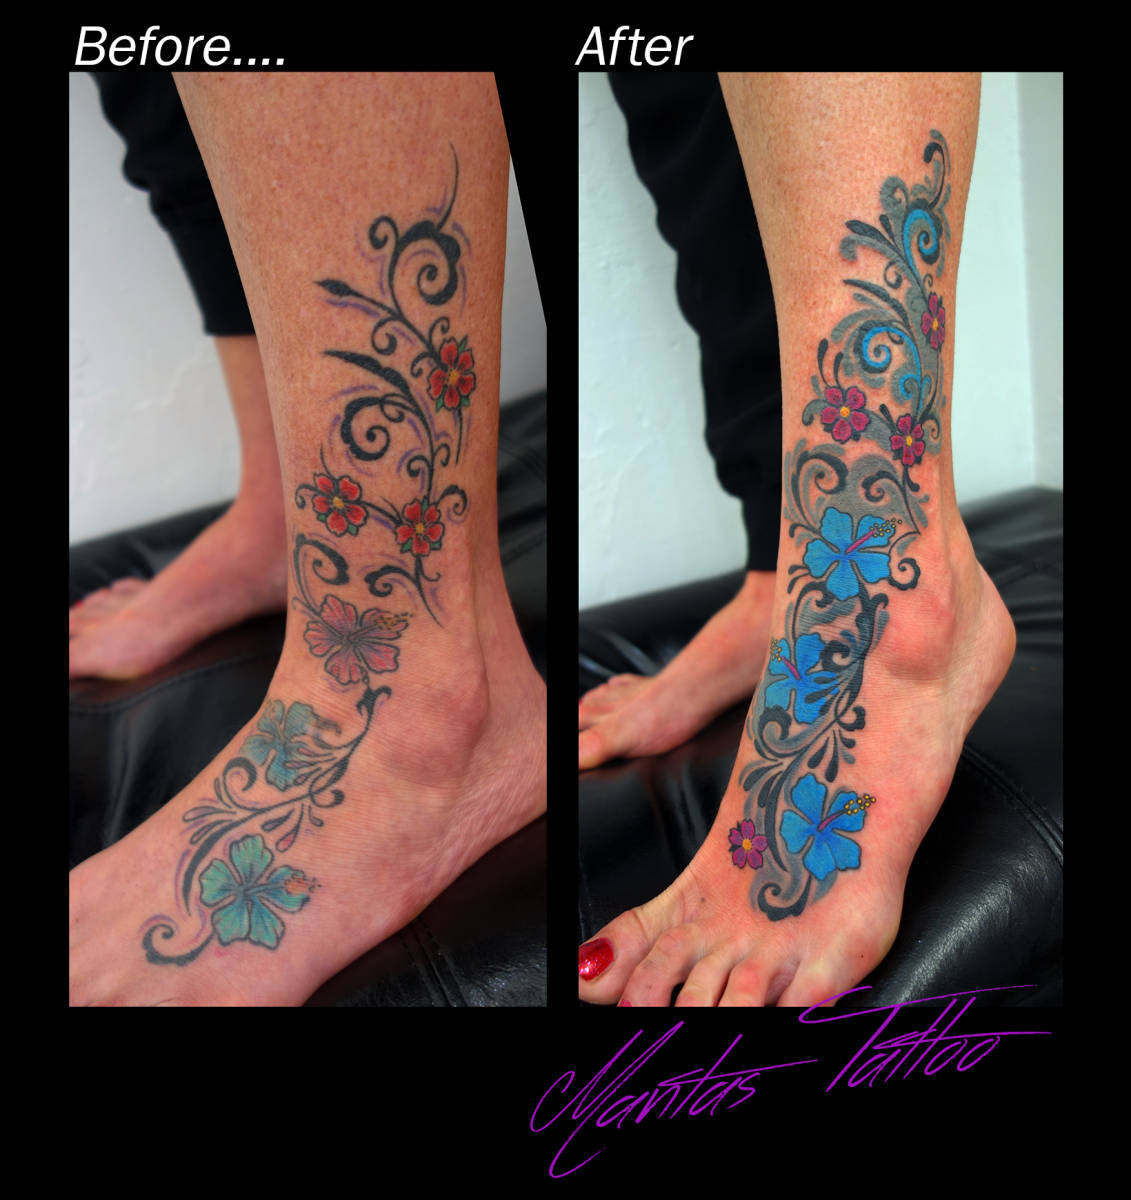 Rework of old and tired tattoo into a fresh and bright one